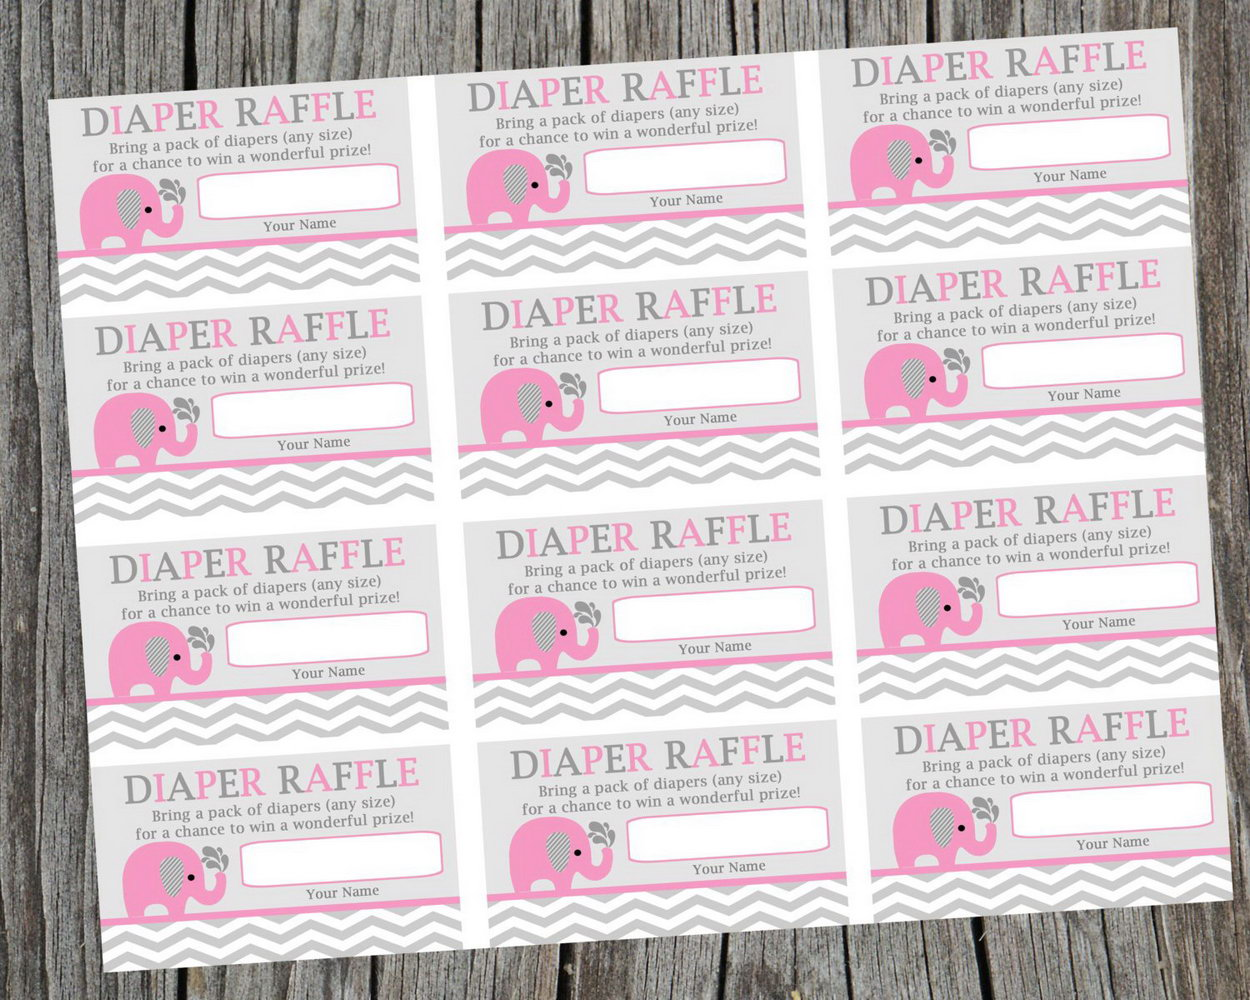 photo relating to Diaper Raffle Tickets Printable Free known as Absolutely free Printable Elephant Diaper Raffle Ticket Template